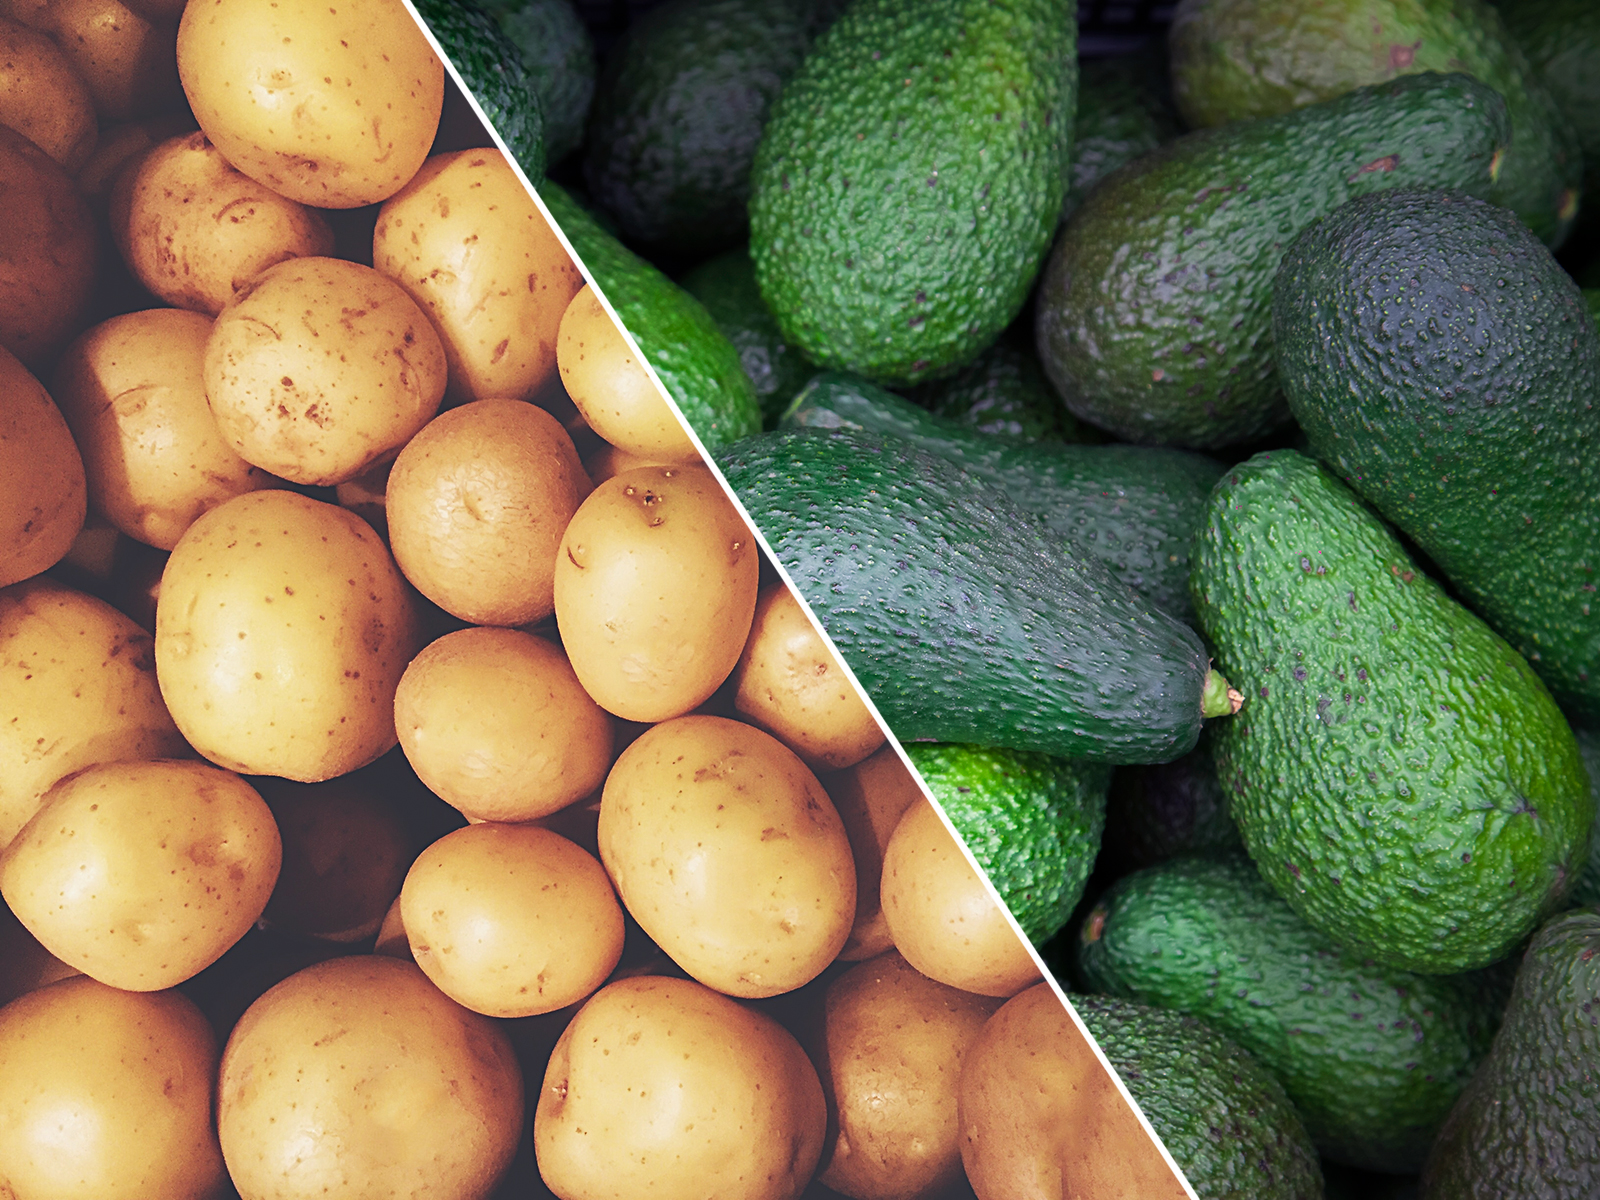 potatoes vs avocados